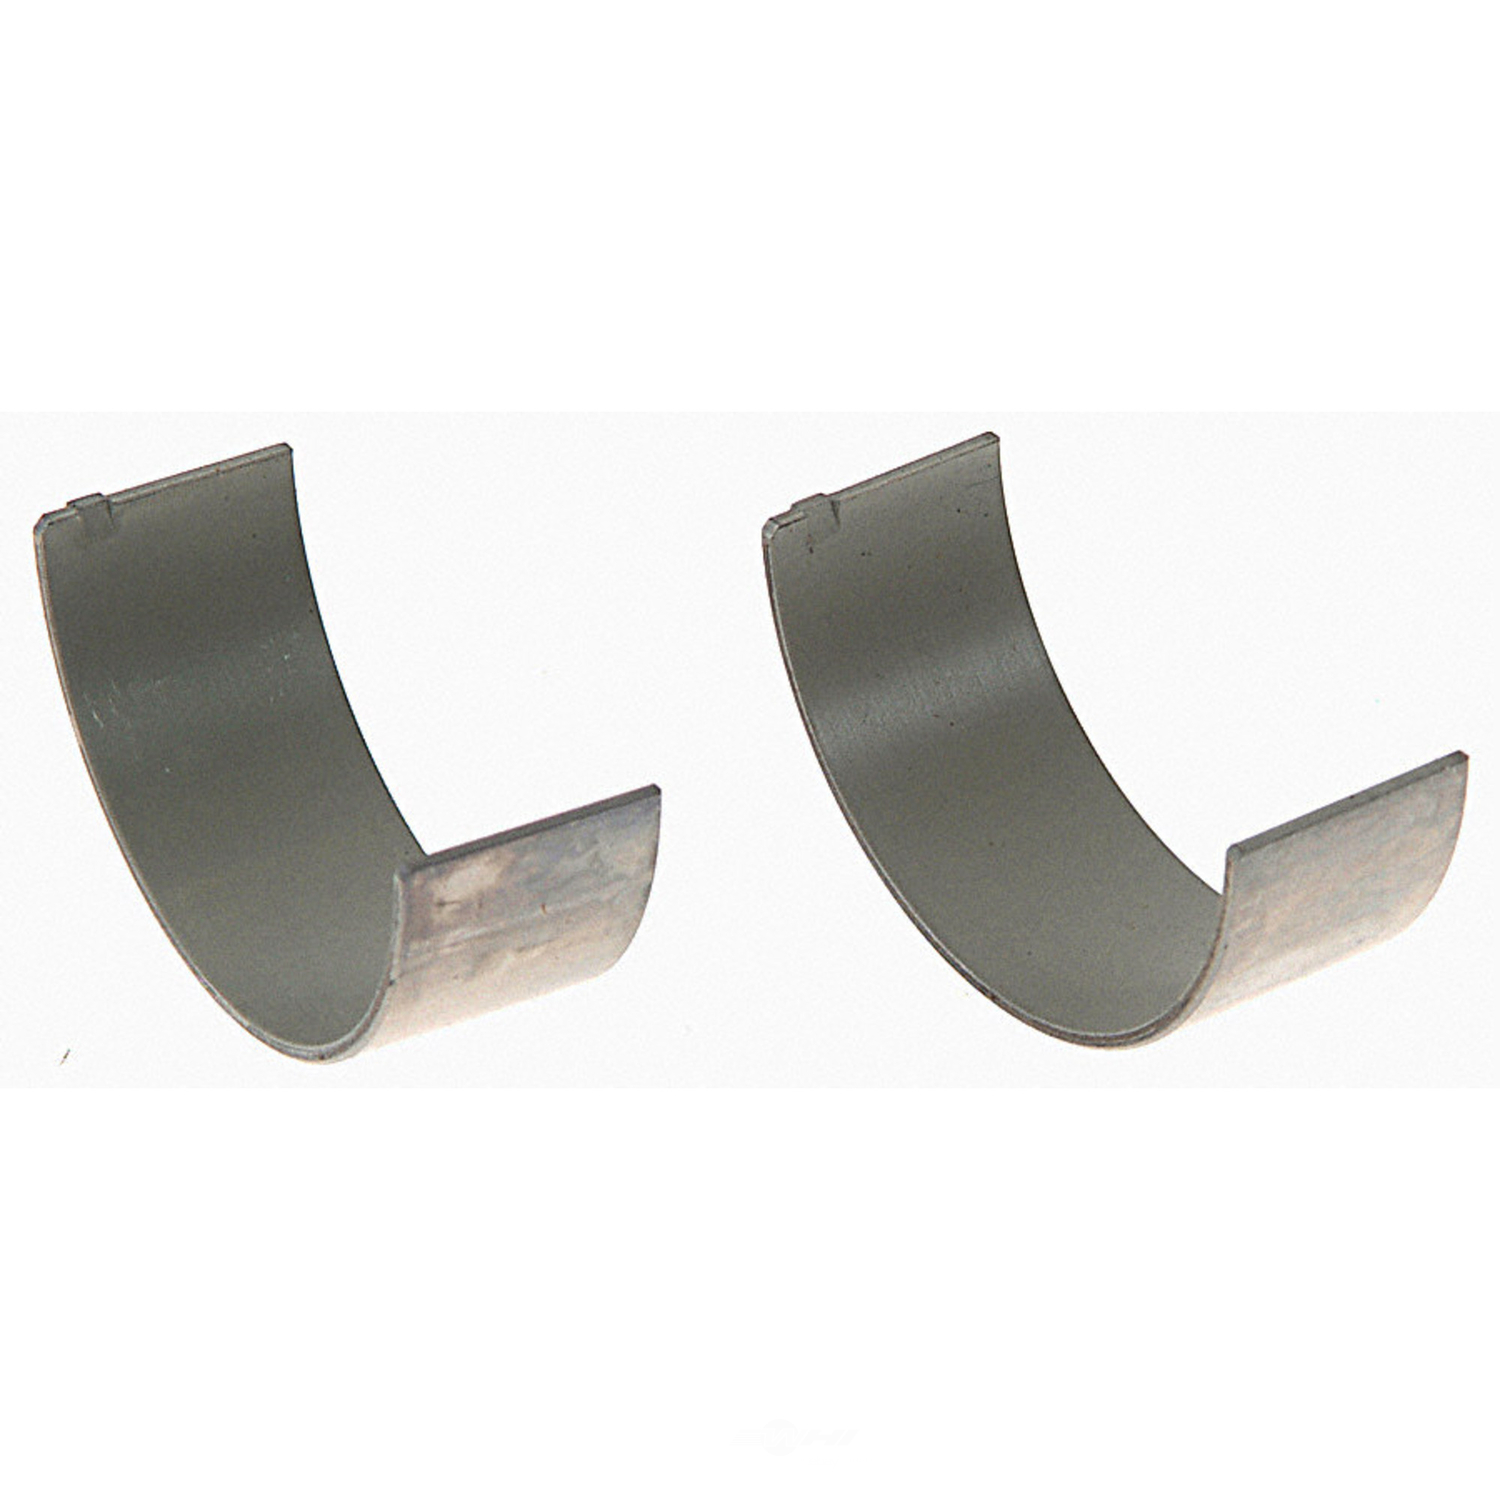 SEALED POWER - Engine Connecting Rod Bearing - SEA 2555CP 10